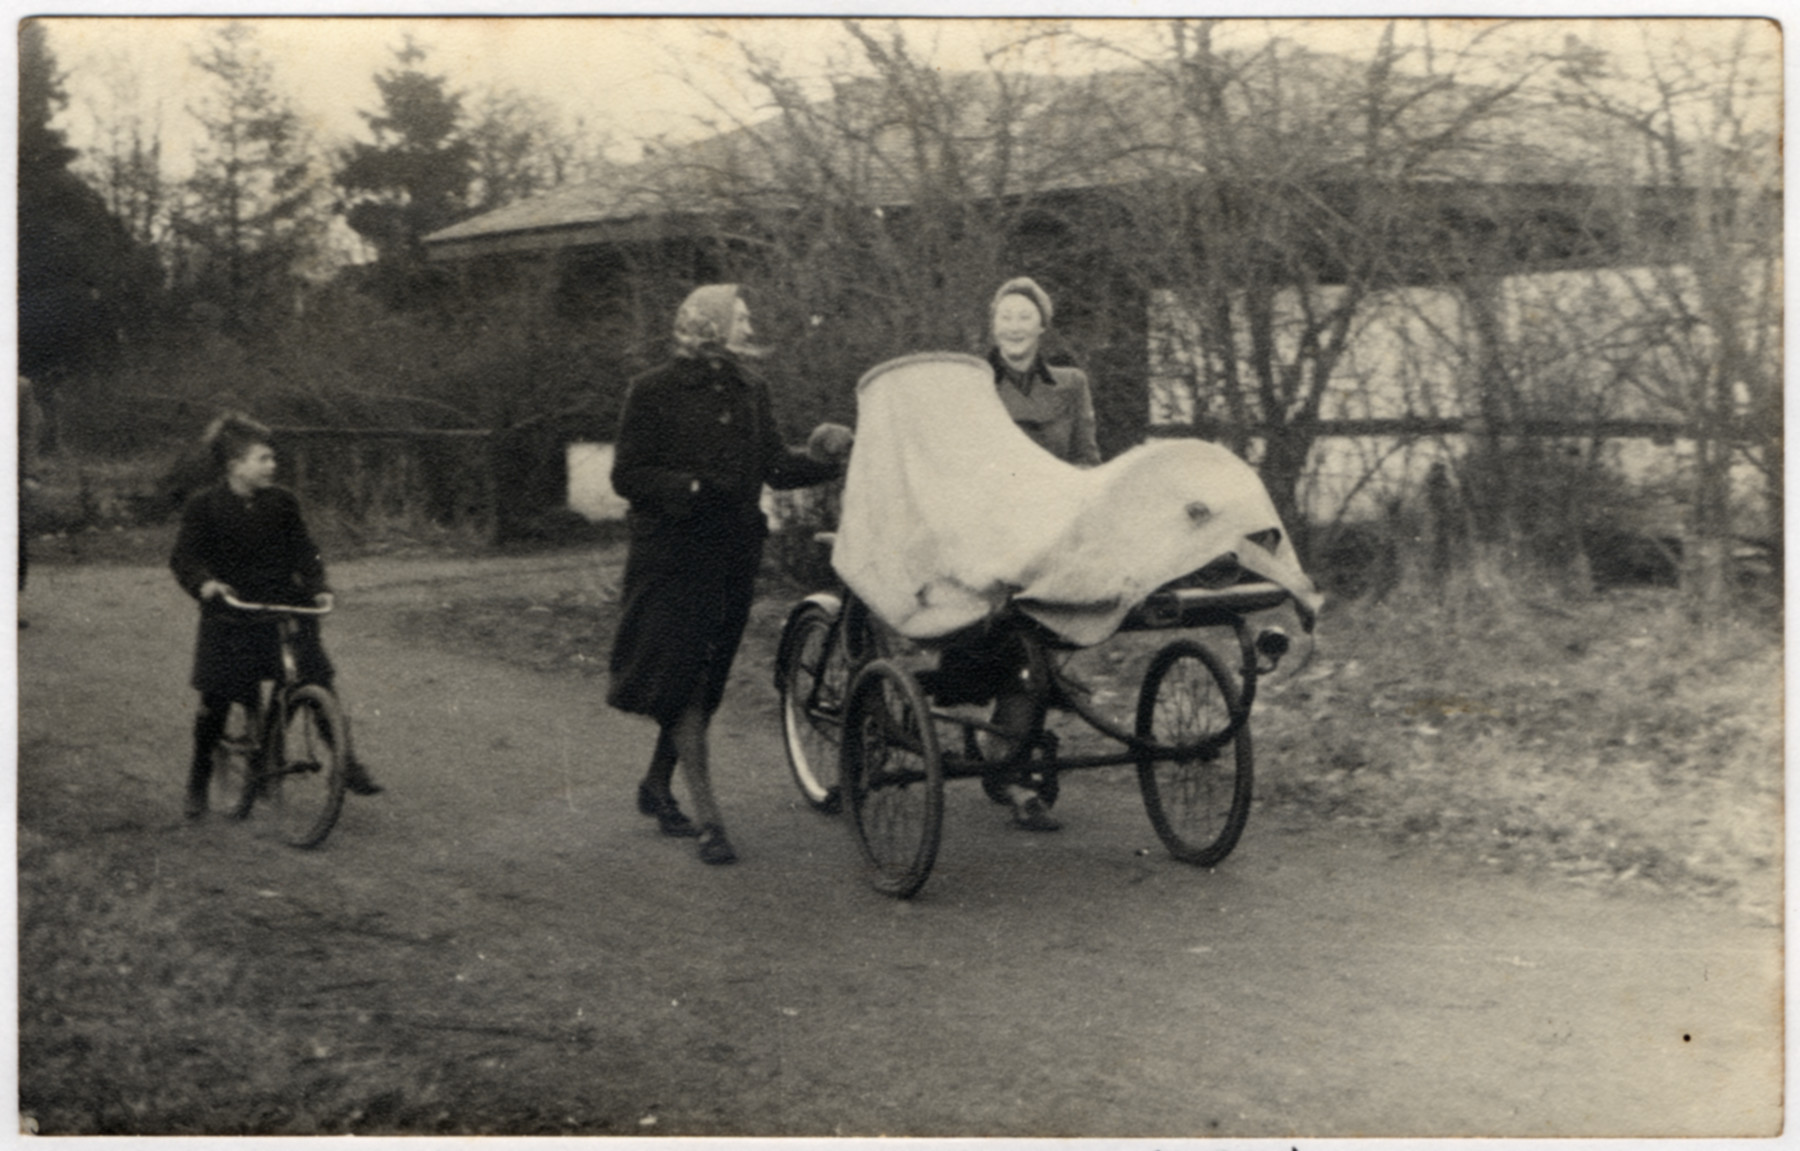 Edith van Dam transports her nephew Jaap van Dam in a covered cart to a hospital to have an appendicitis during the final weeks of the war.